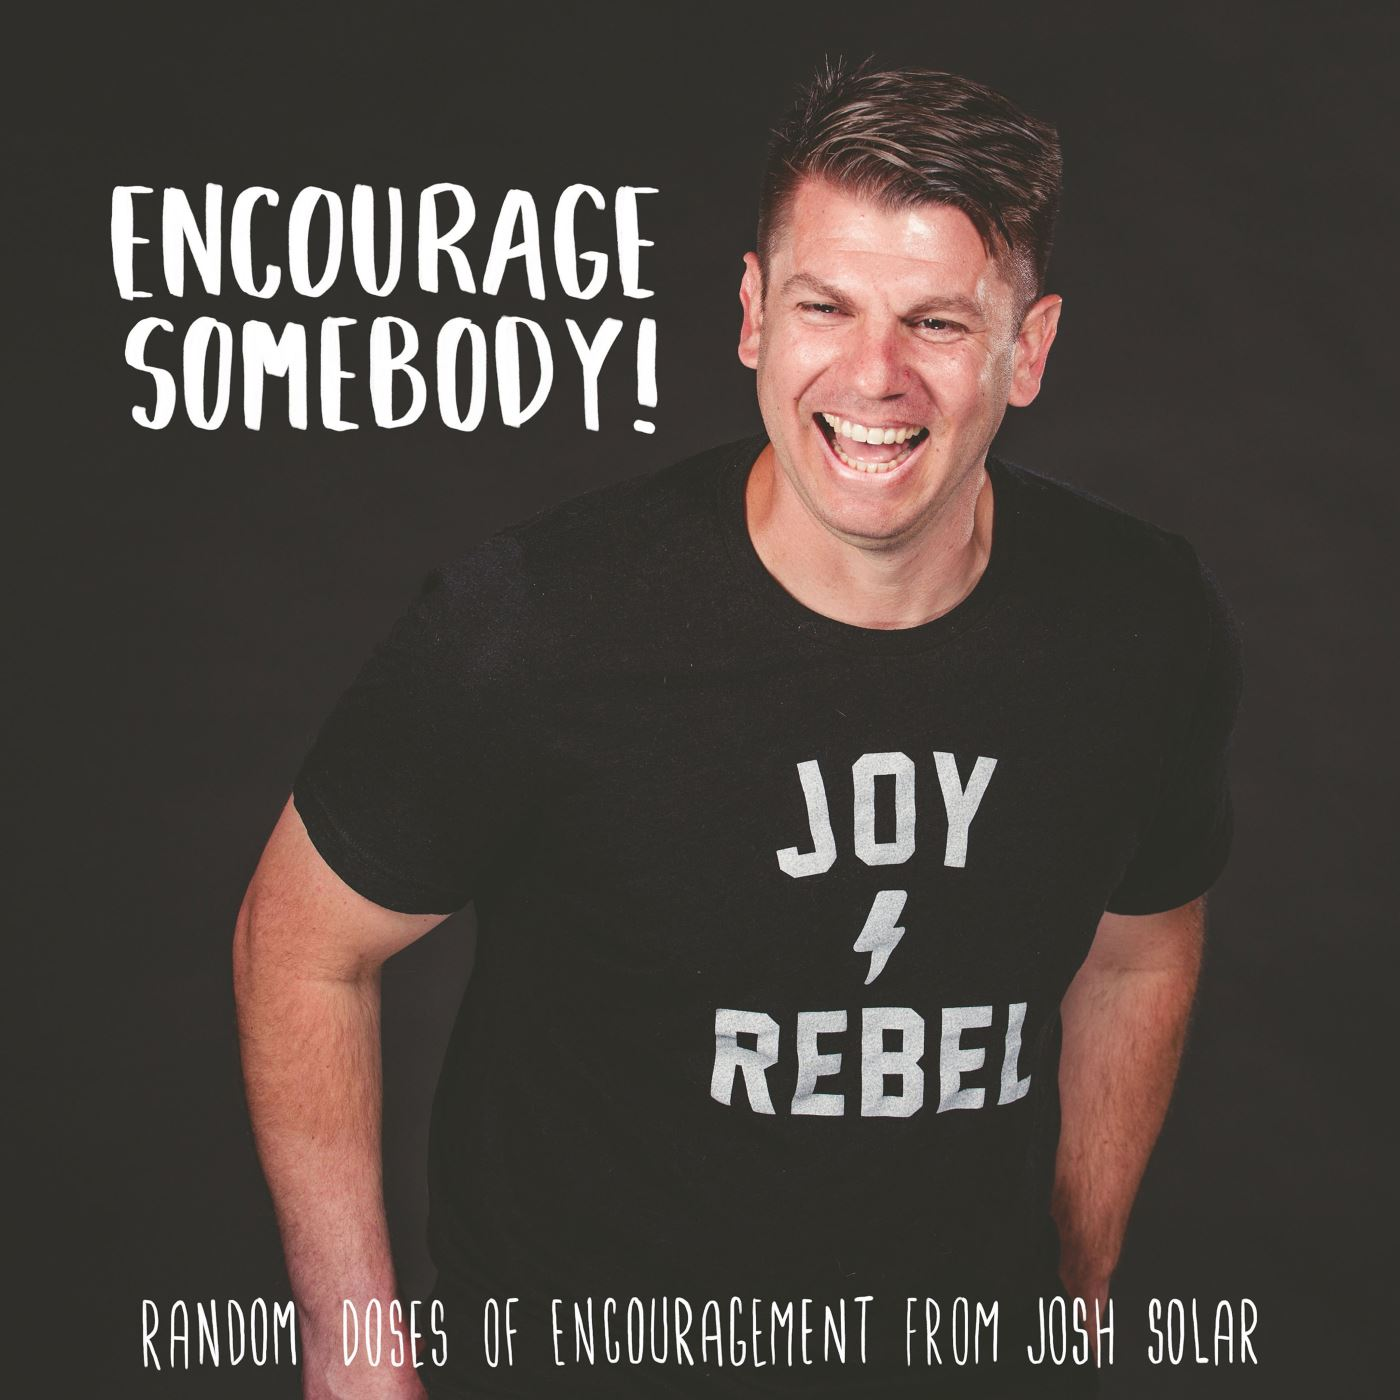 Encourage Somebody!